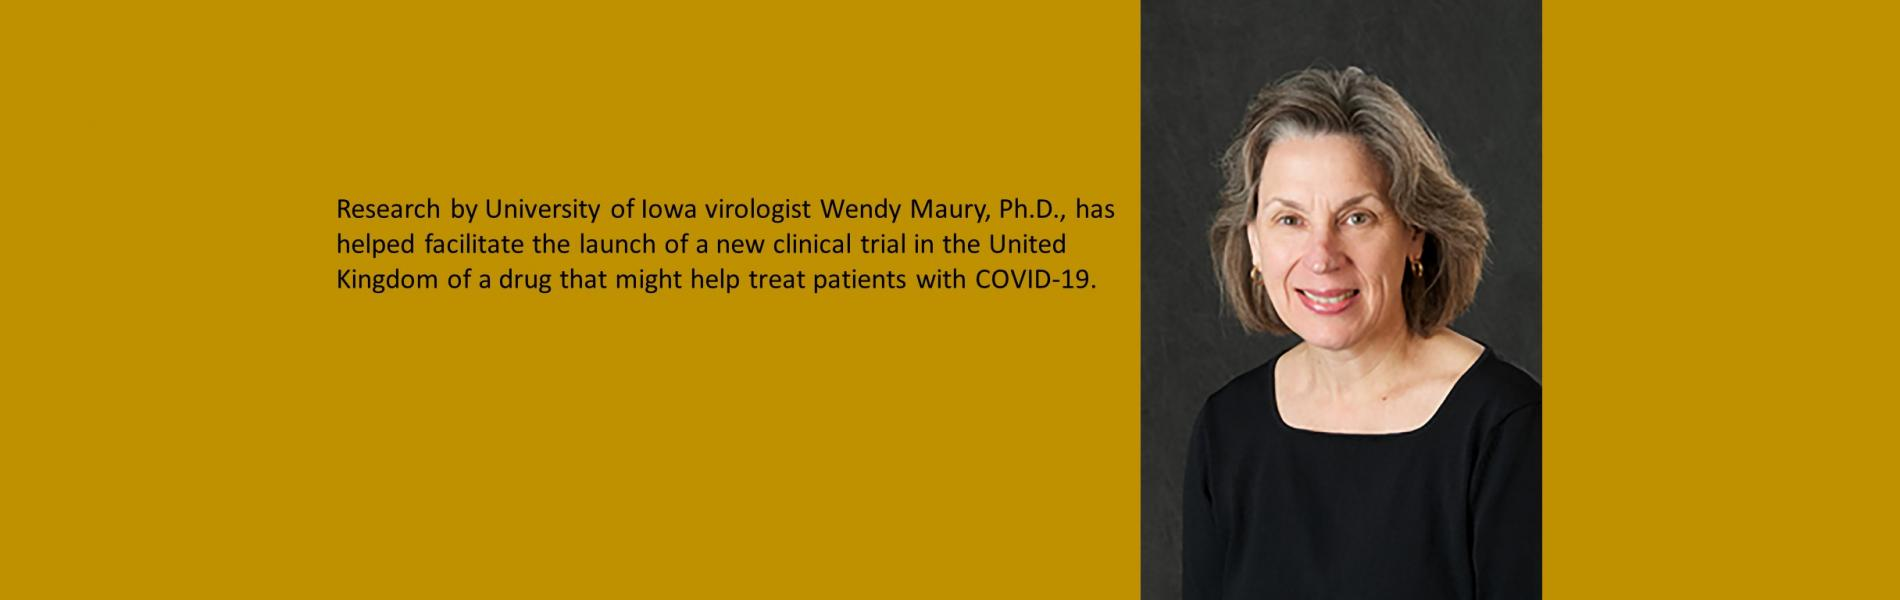 Wendy Maury: Research by University of Iowa virologist Wendy Maury, PhD, has helped facilitate the launch of a new clinical trial in the United Kingdom of a drug that might help treat patients with COVID-19.